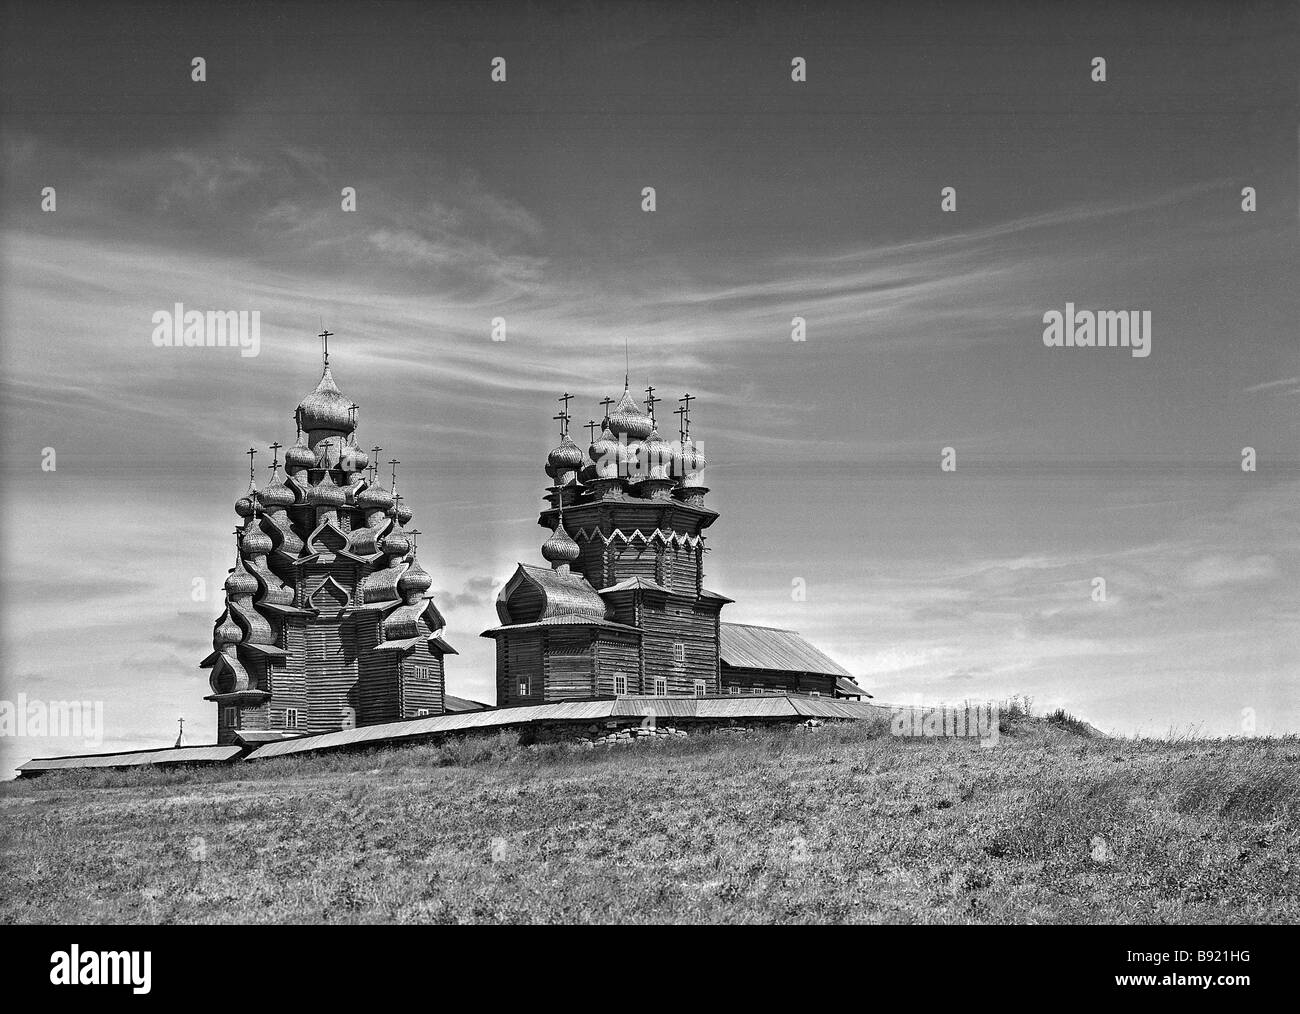 The Kizhi open air museum of wooden architecture - Stock Image